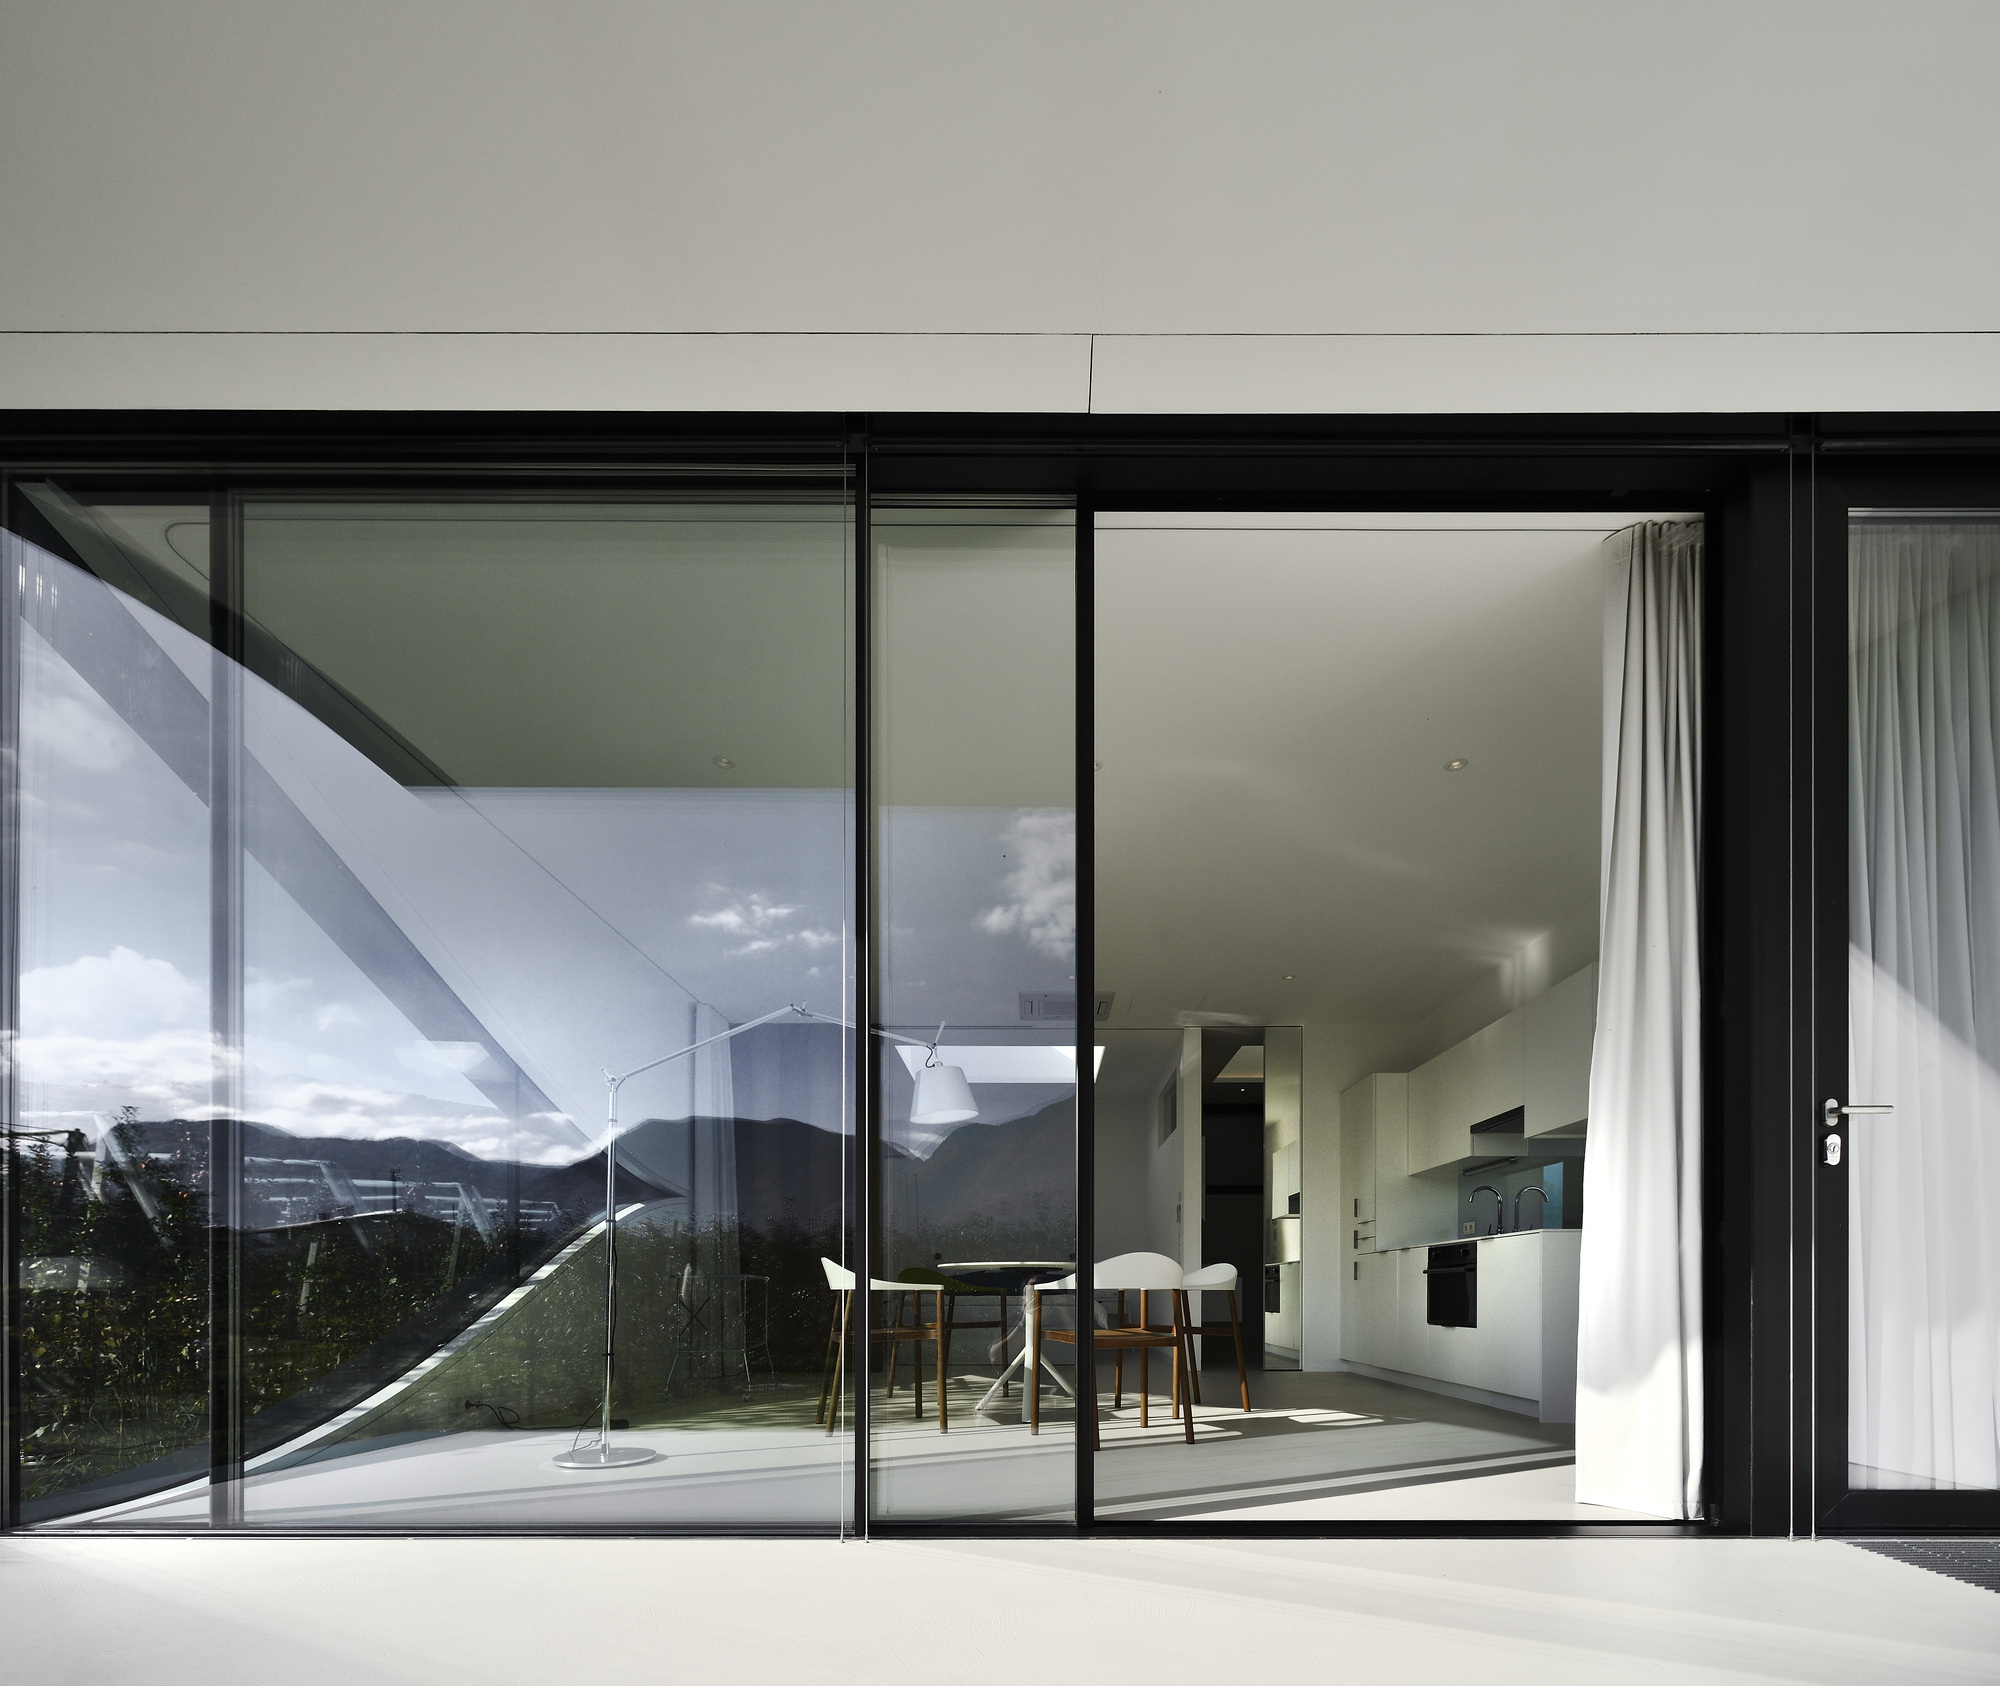 The Mirror Houses / Peter Pichler Architecture (15)